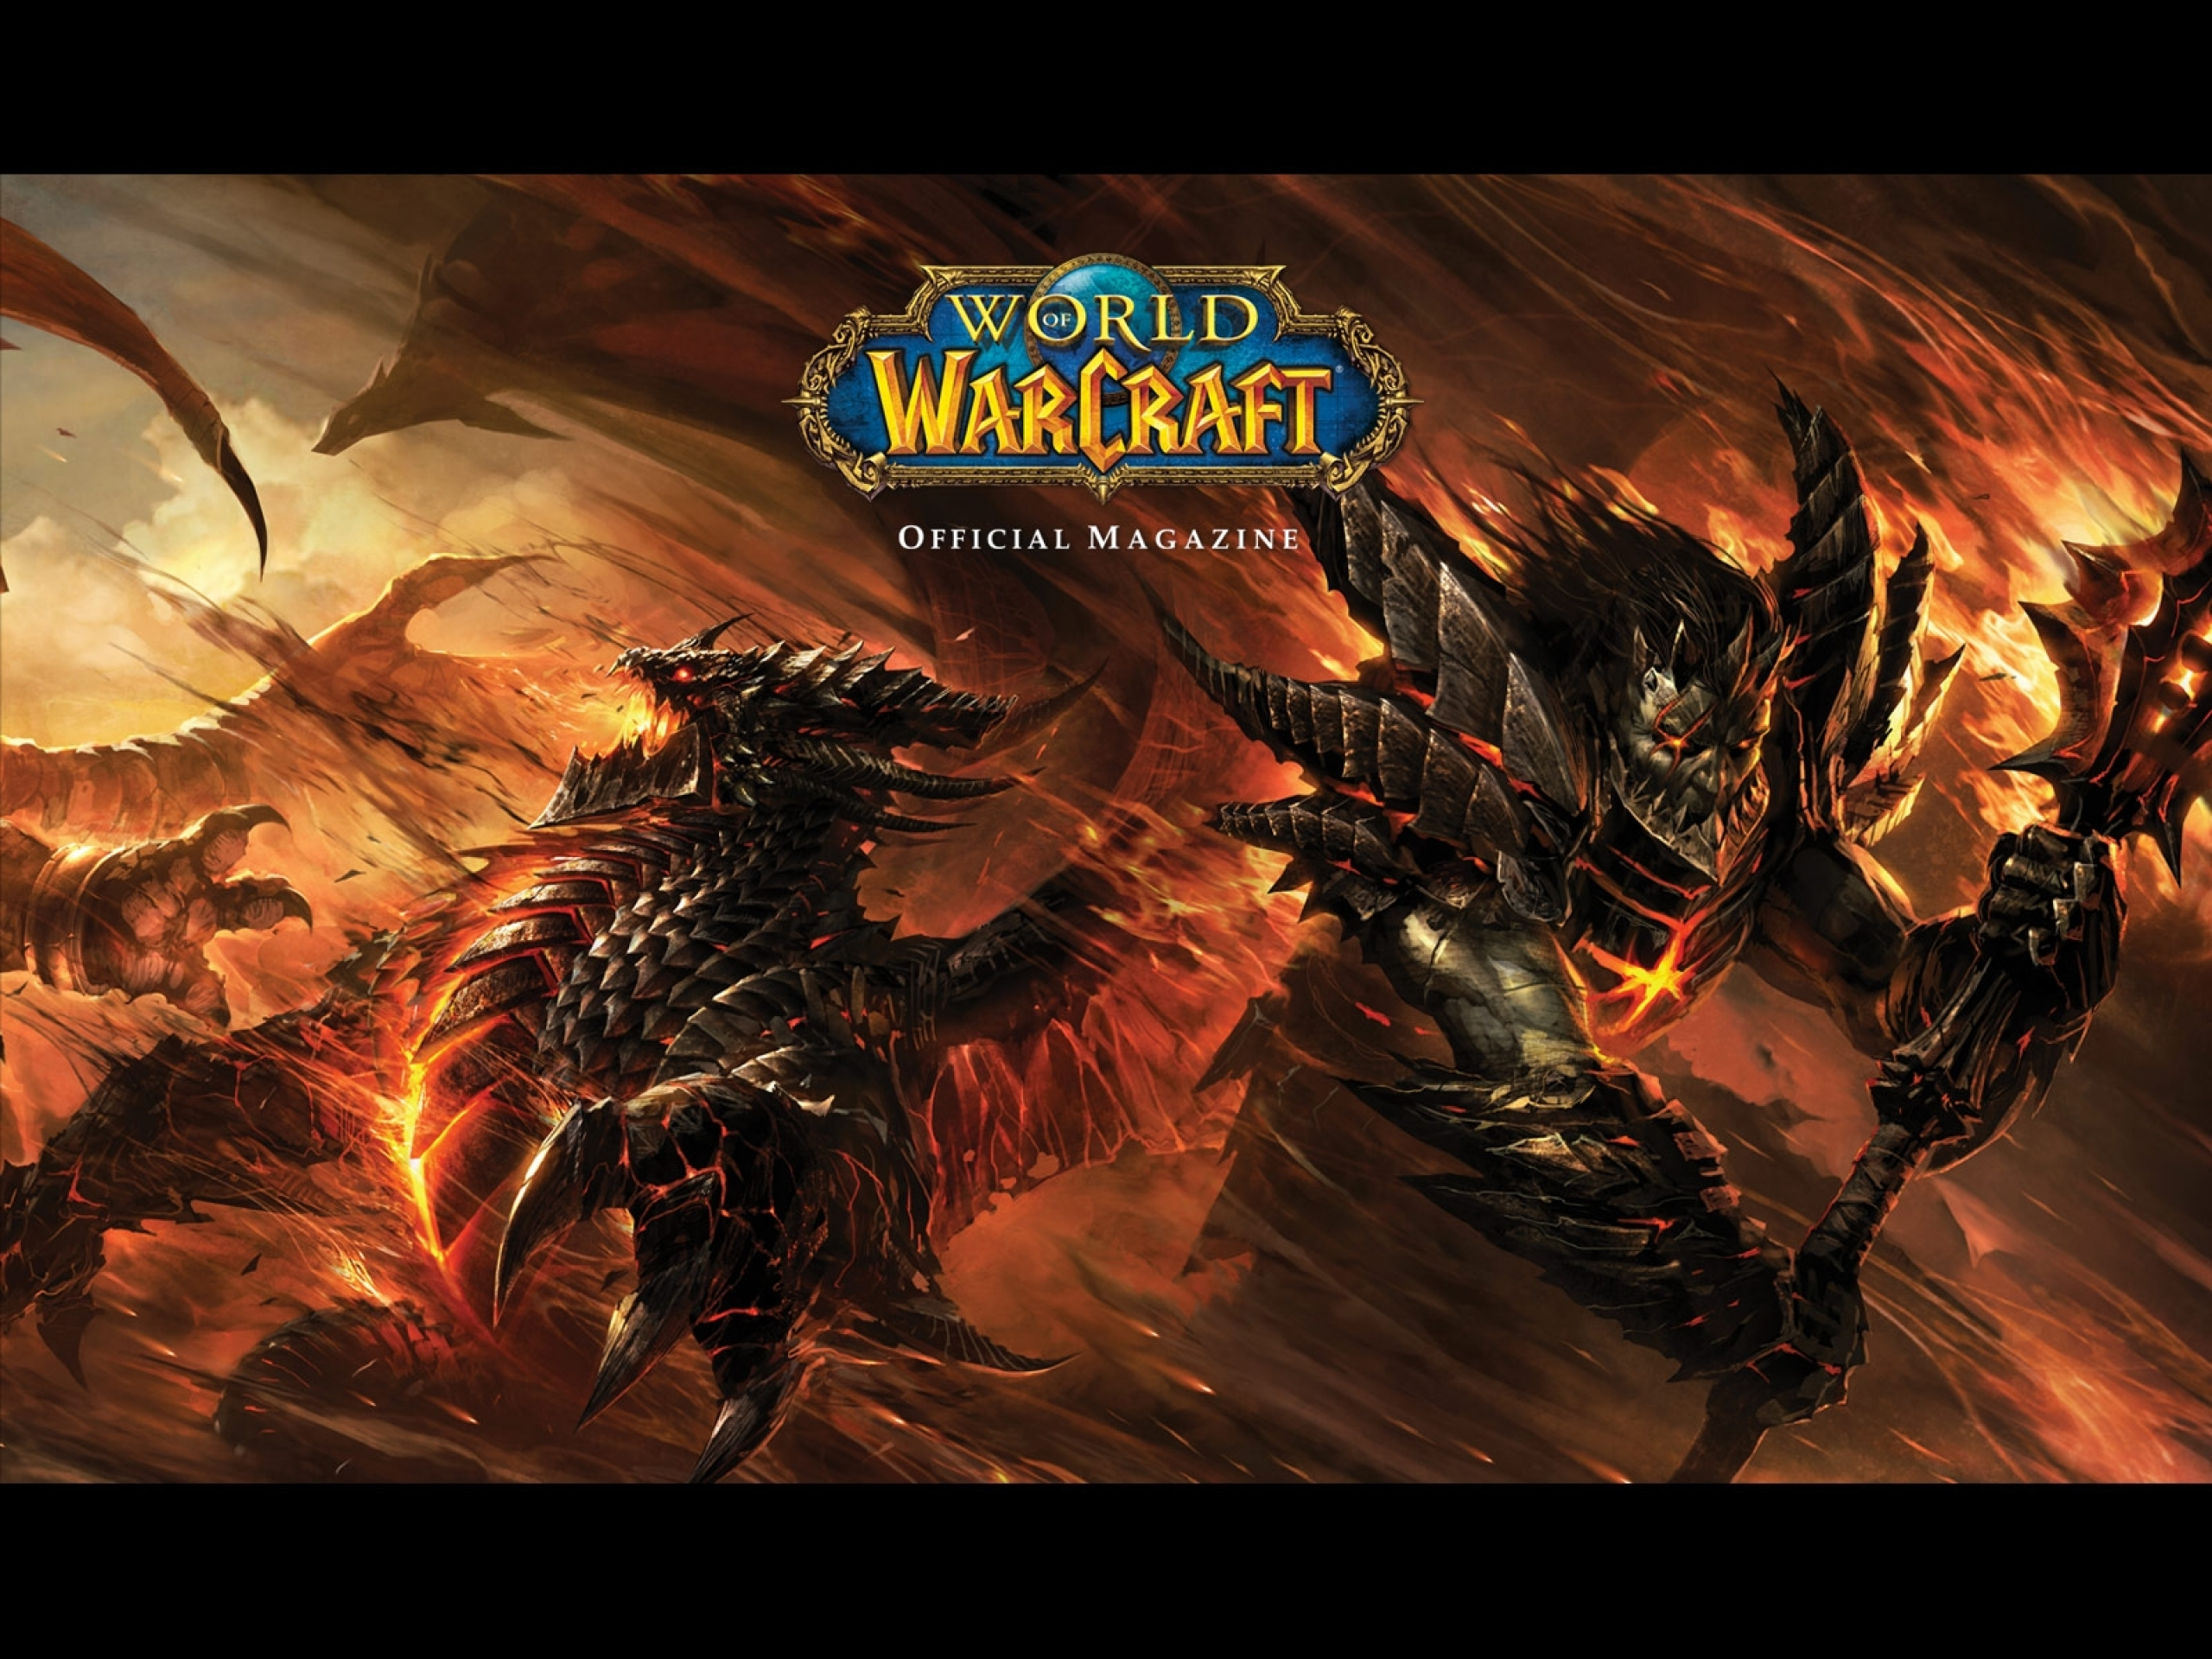 World Of Warcraft Hd Wallpaper Background Image 2560x1920 Id